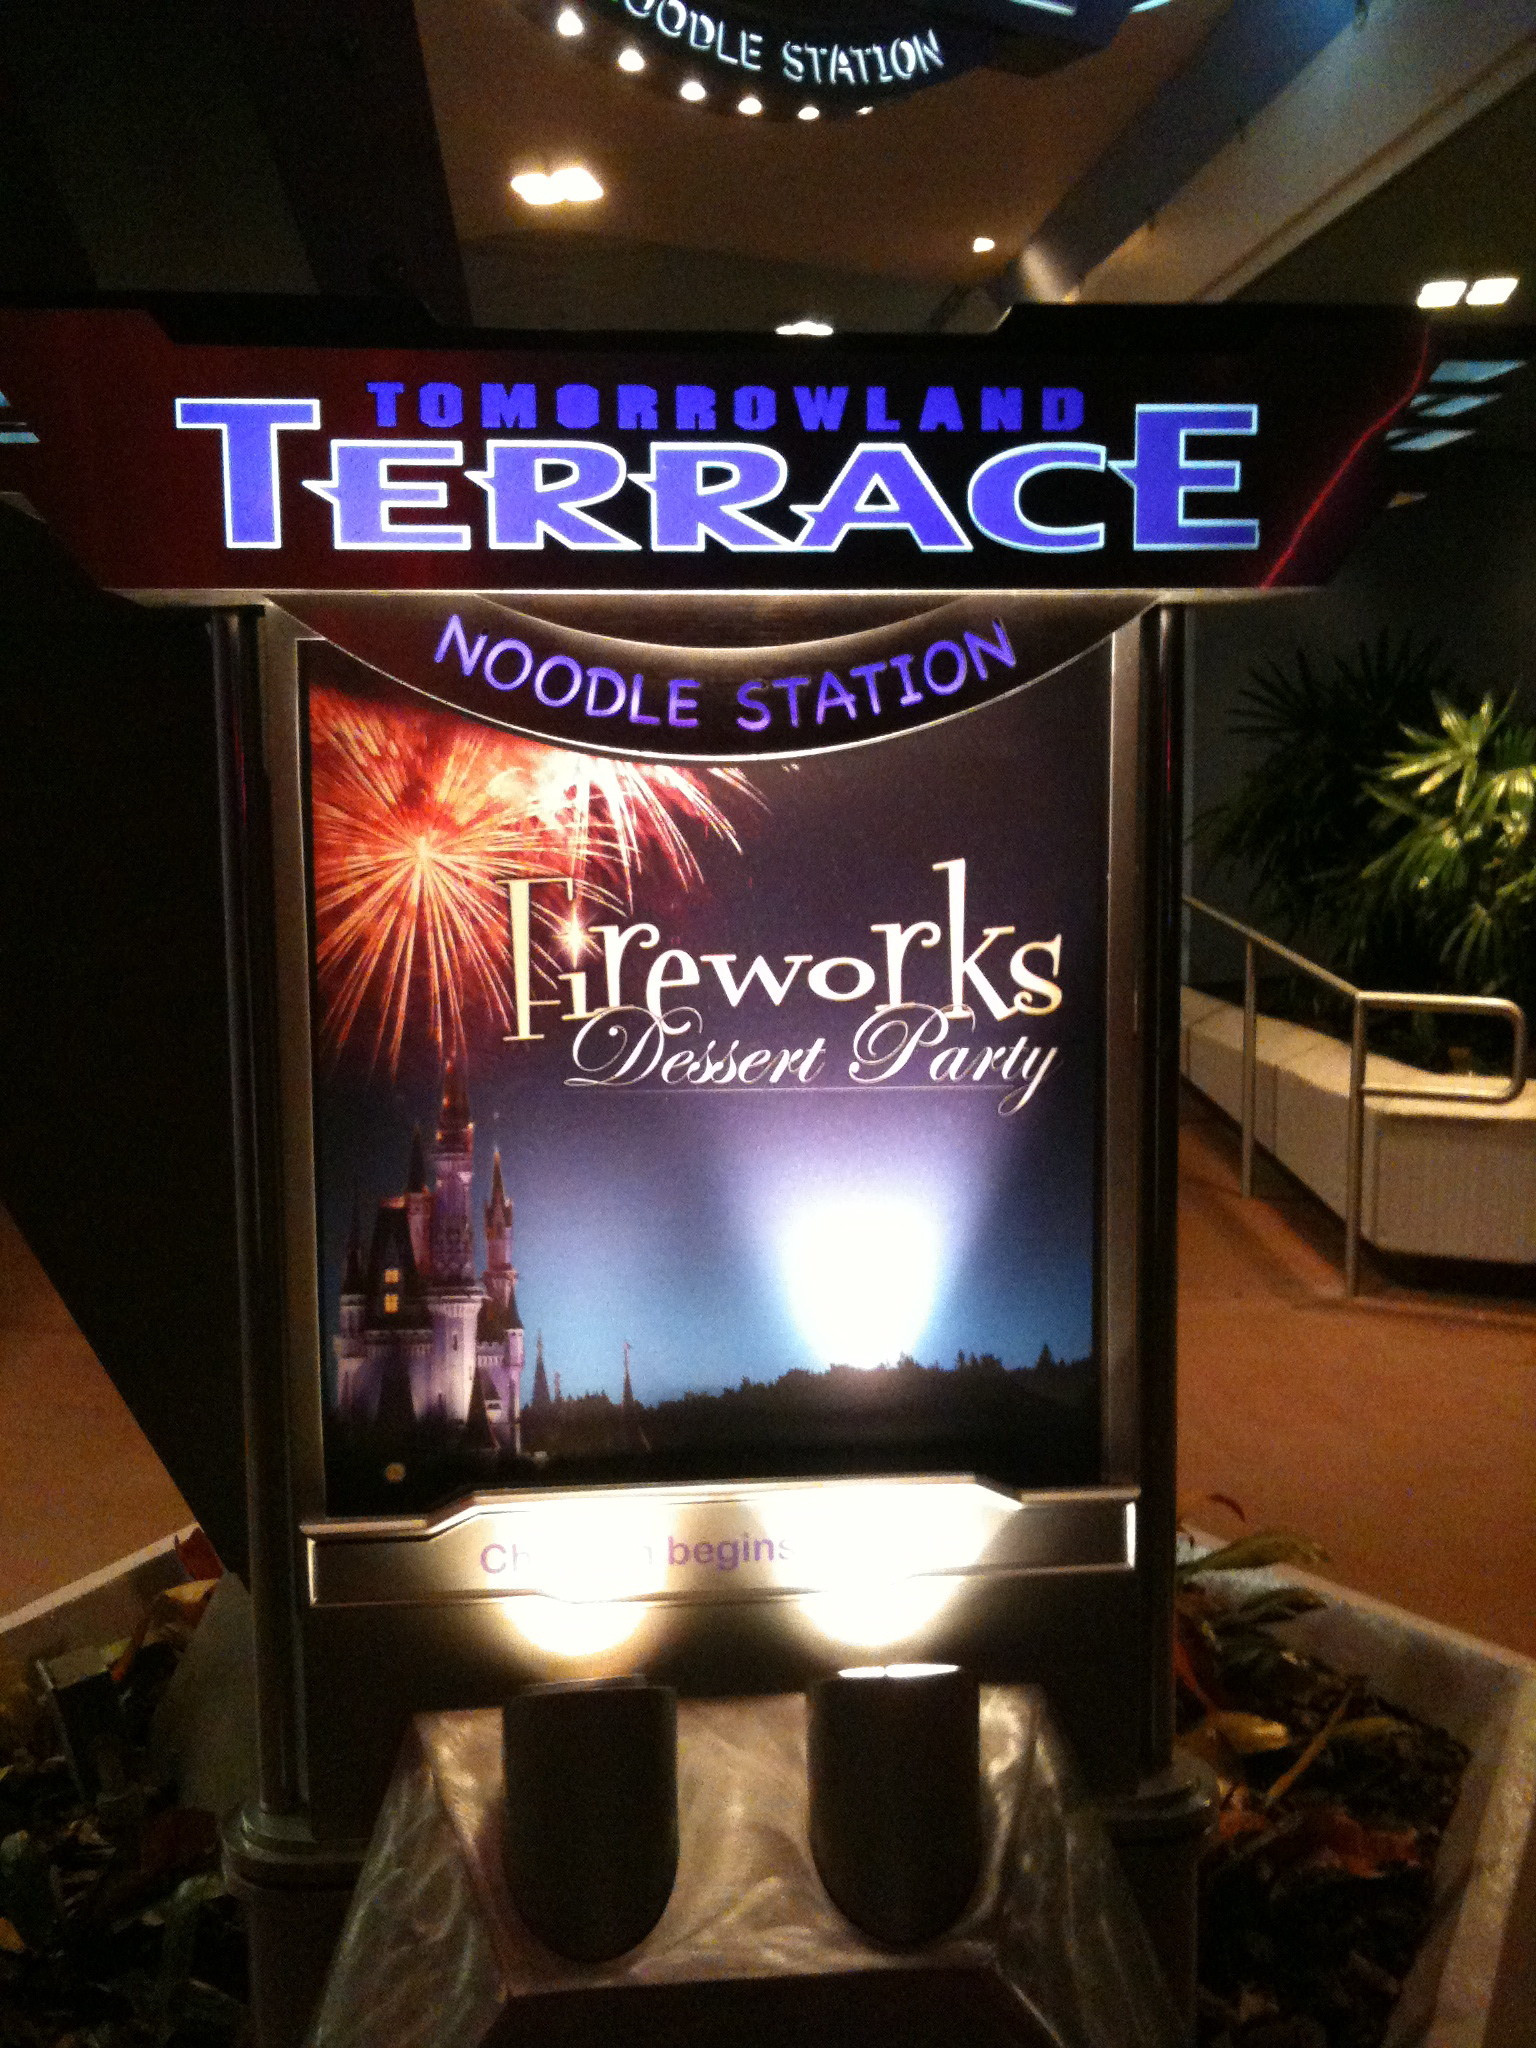 Fireworks Dessert Party At Tomorrowland Terrace  Tomorrowland Terrace Fireworks Dessert Party is Delicious